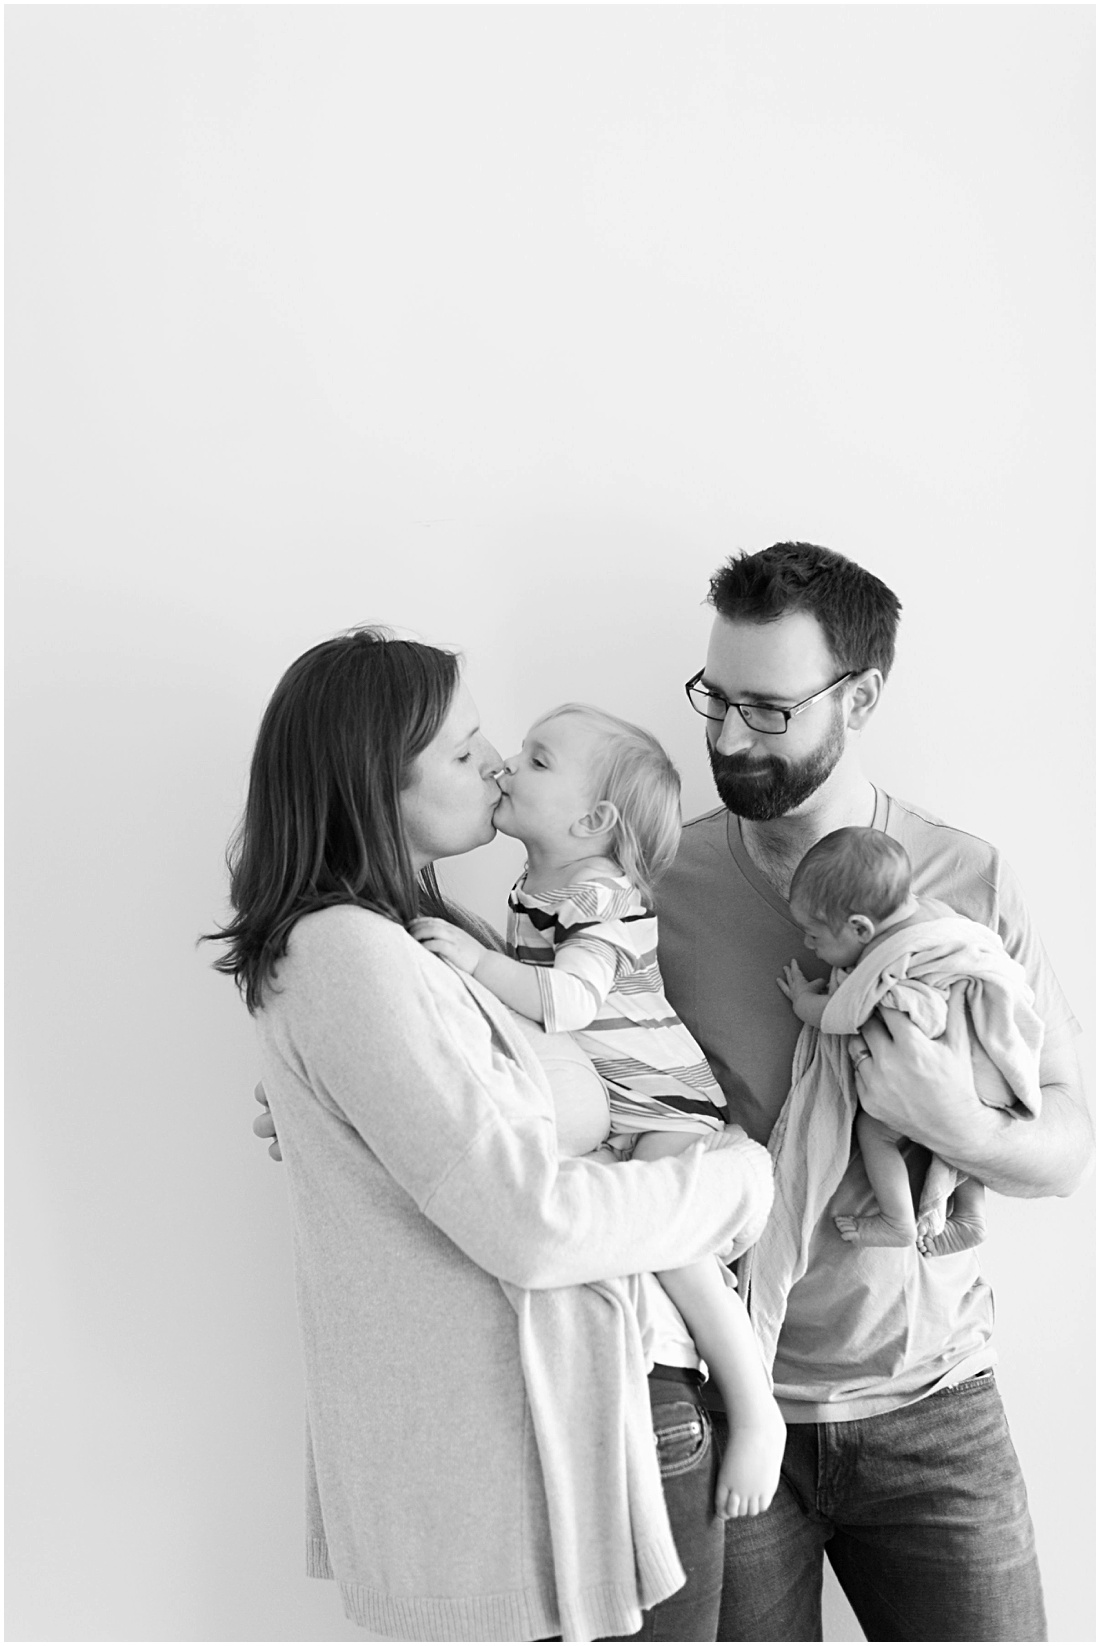 Olivia Leigh Photography | Oregon Lifestyle Family Photographer | Oregon Family Photography | Medford Oregon Newborn Photographer